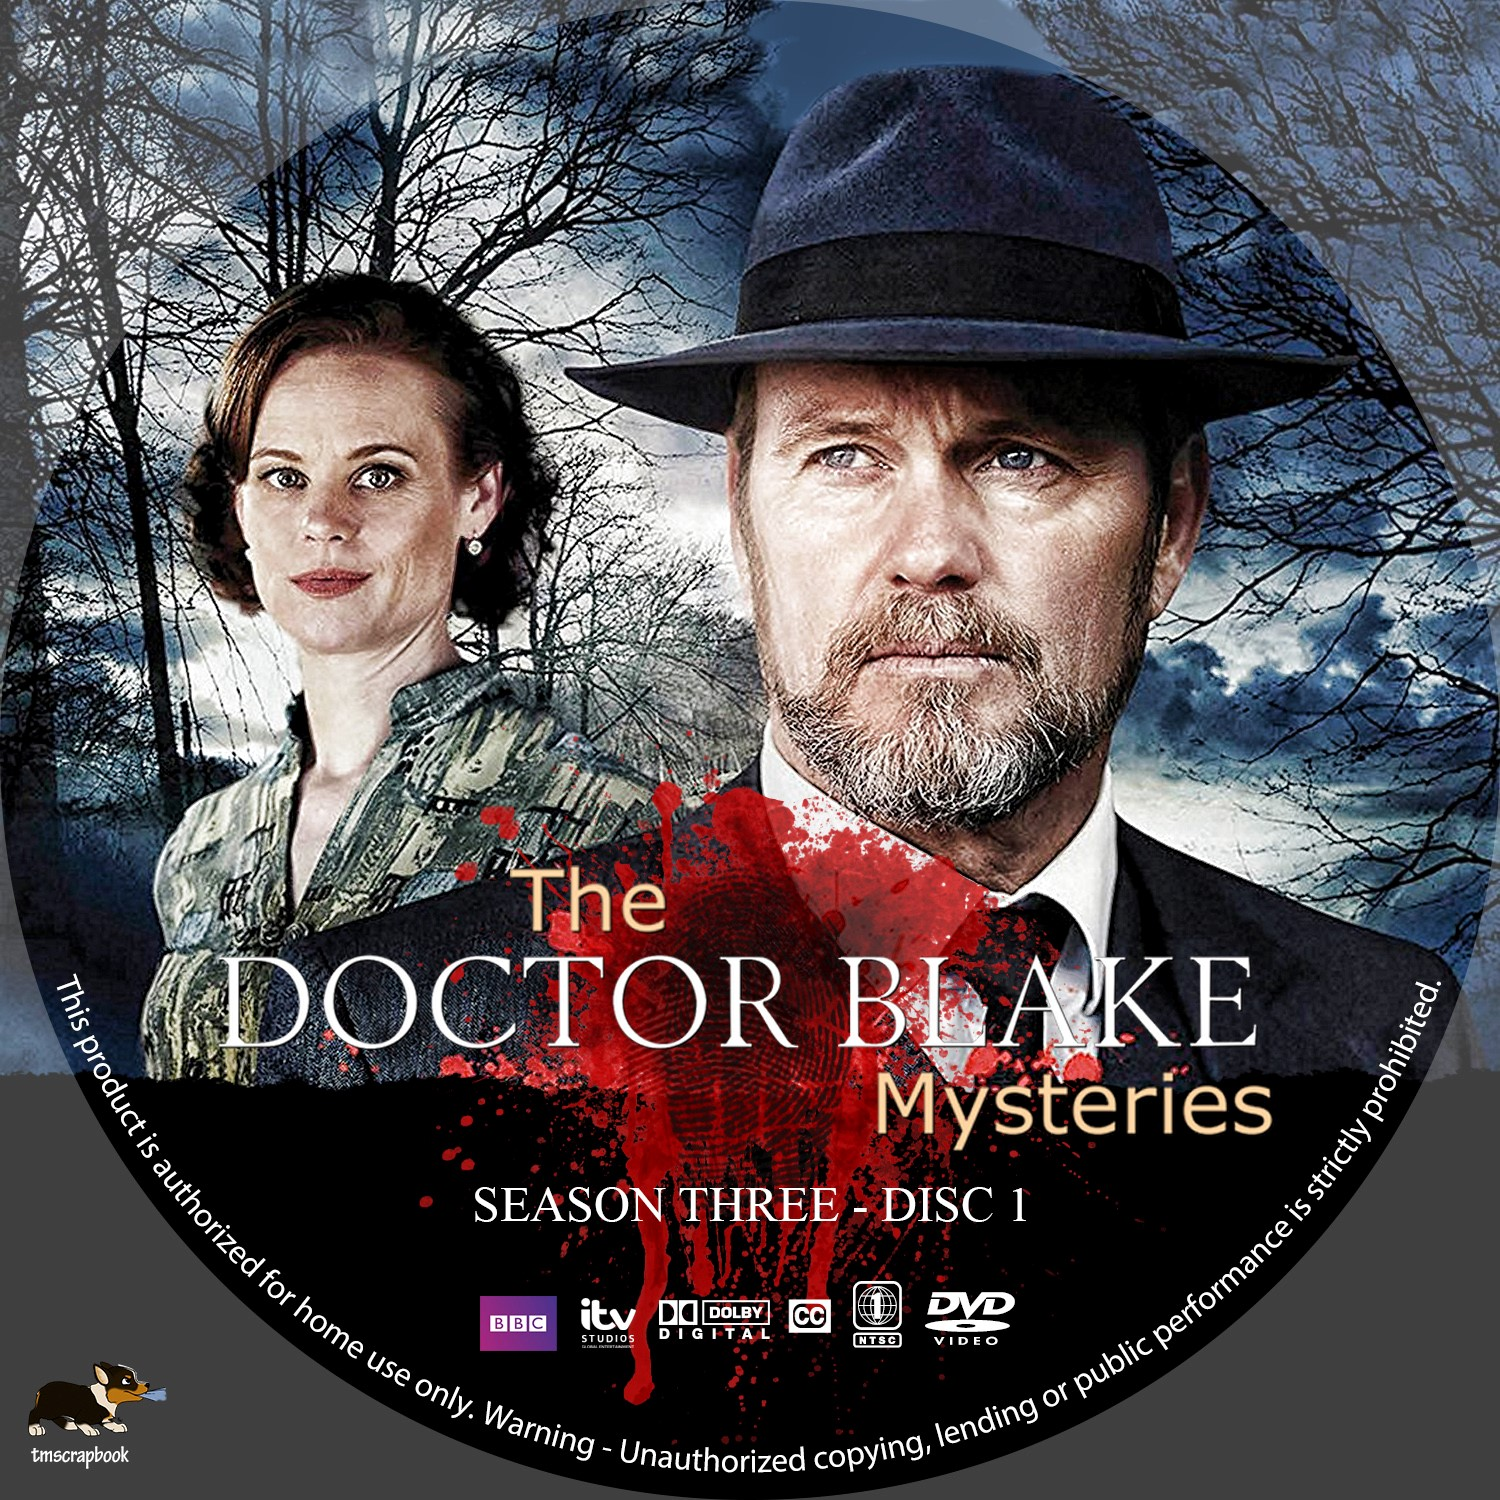 The Doctor Blake Mysteries Season 3 Disc 1-2 DVD Label